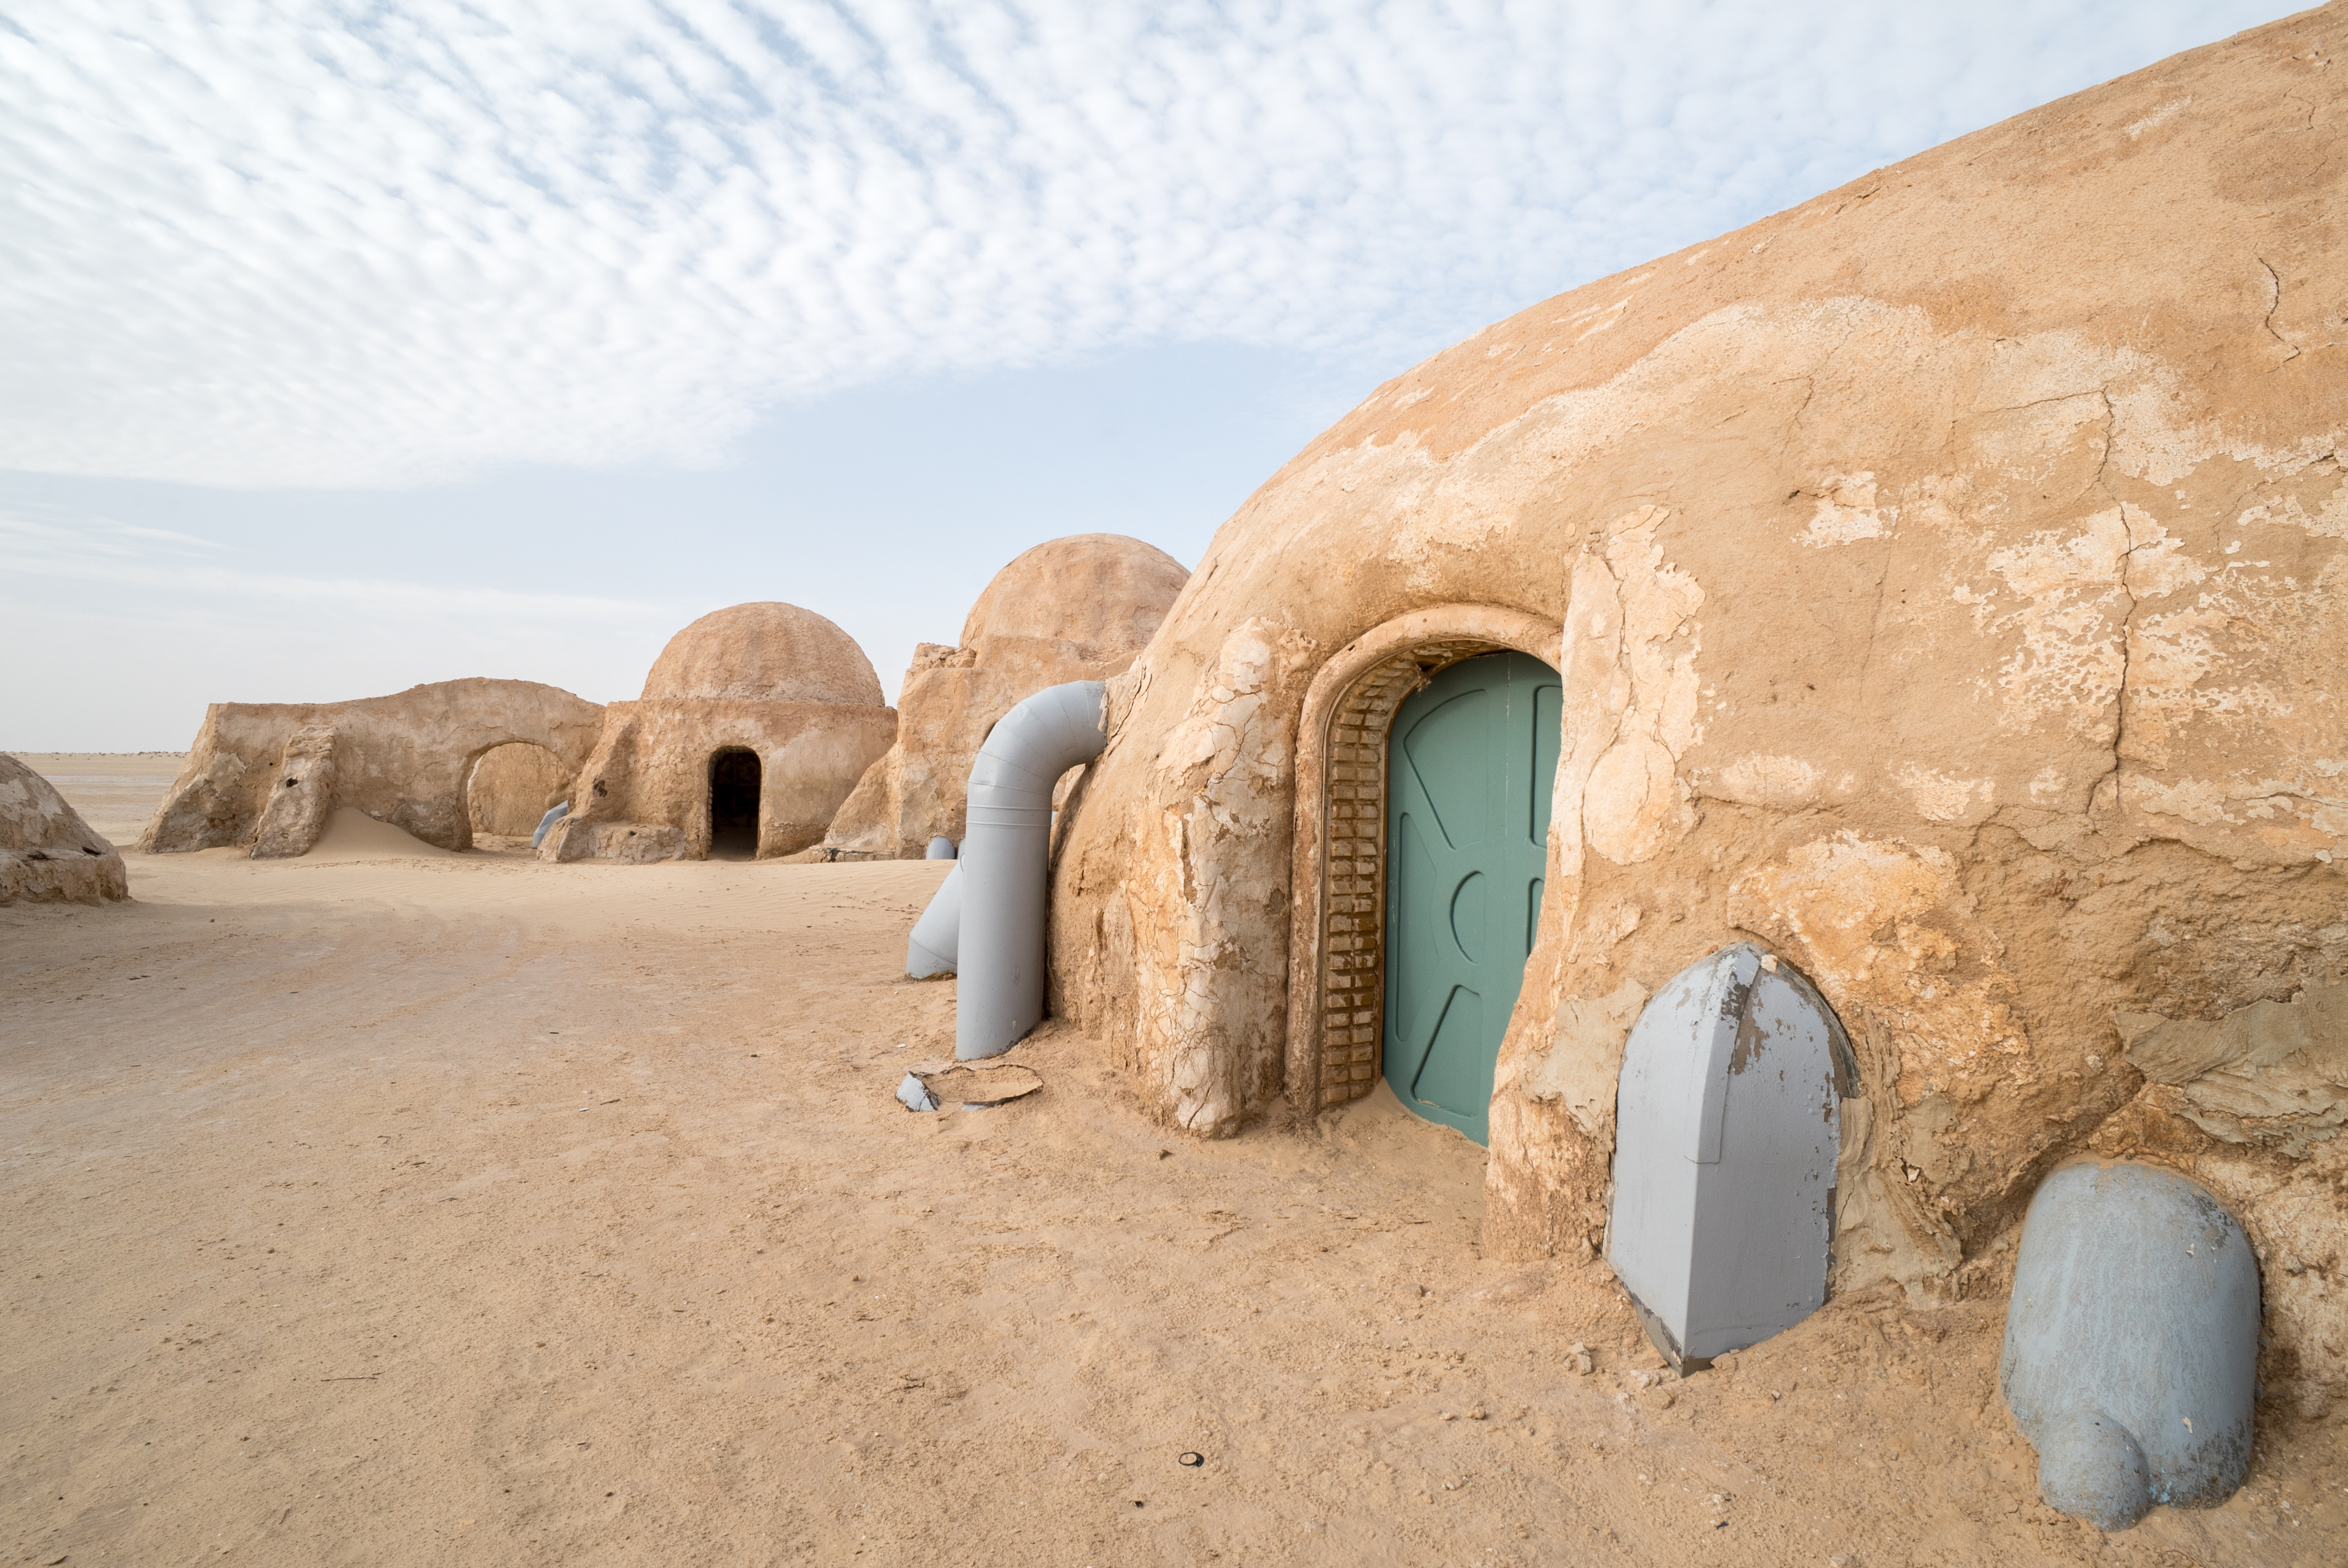 A series of desert dome homes in Tunisia.